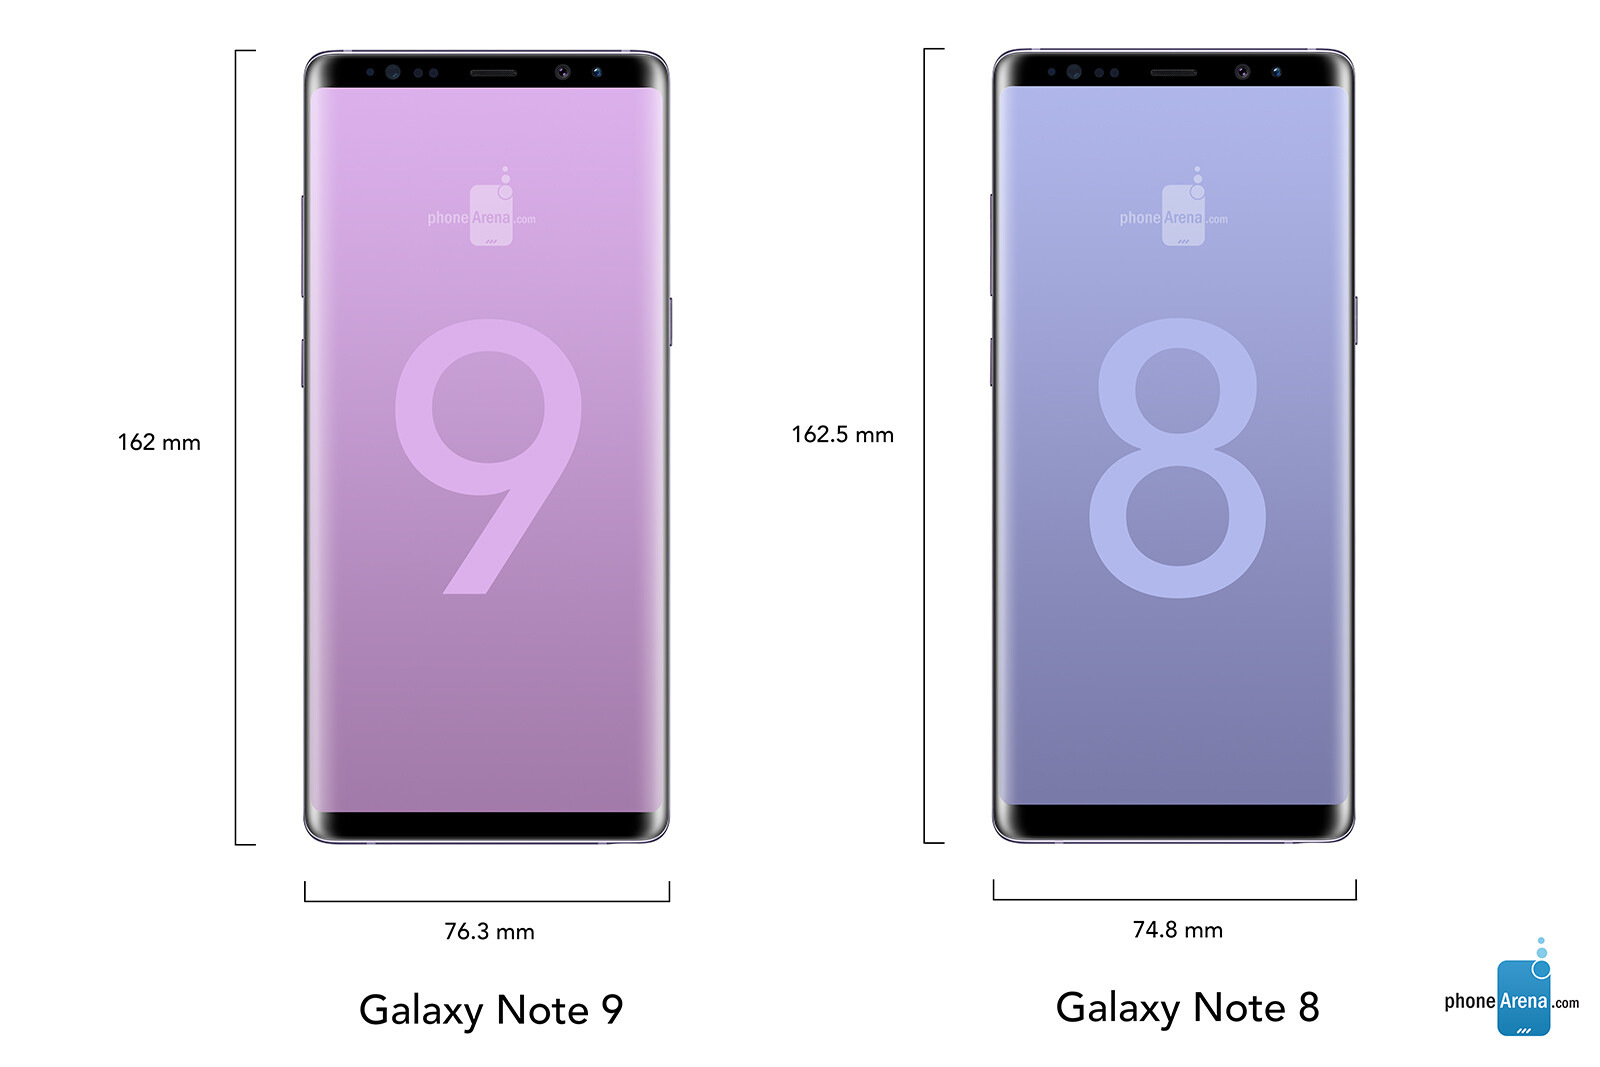 samsung galaxy note 9 size and dimensions compared to the note 8 phonearena. Black Bedroom Furniture Sets. Home Design Ideas